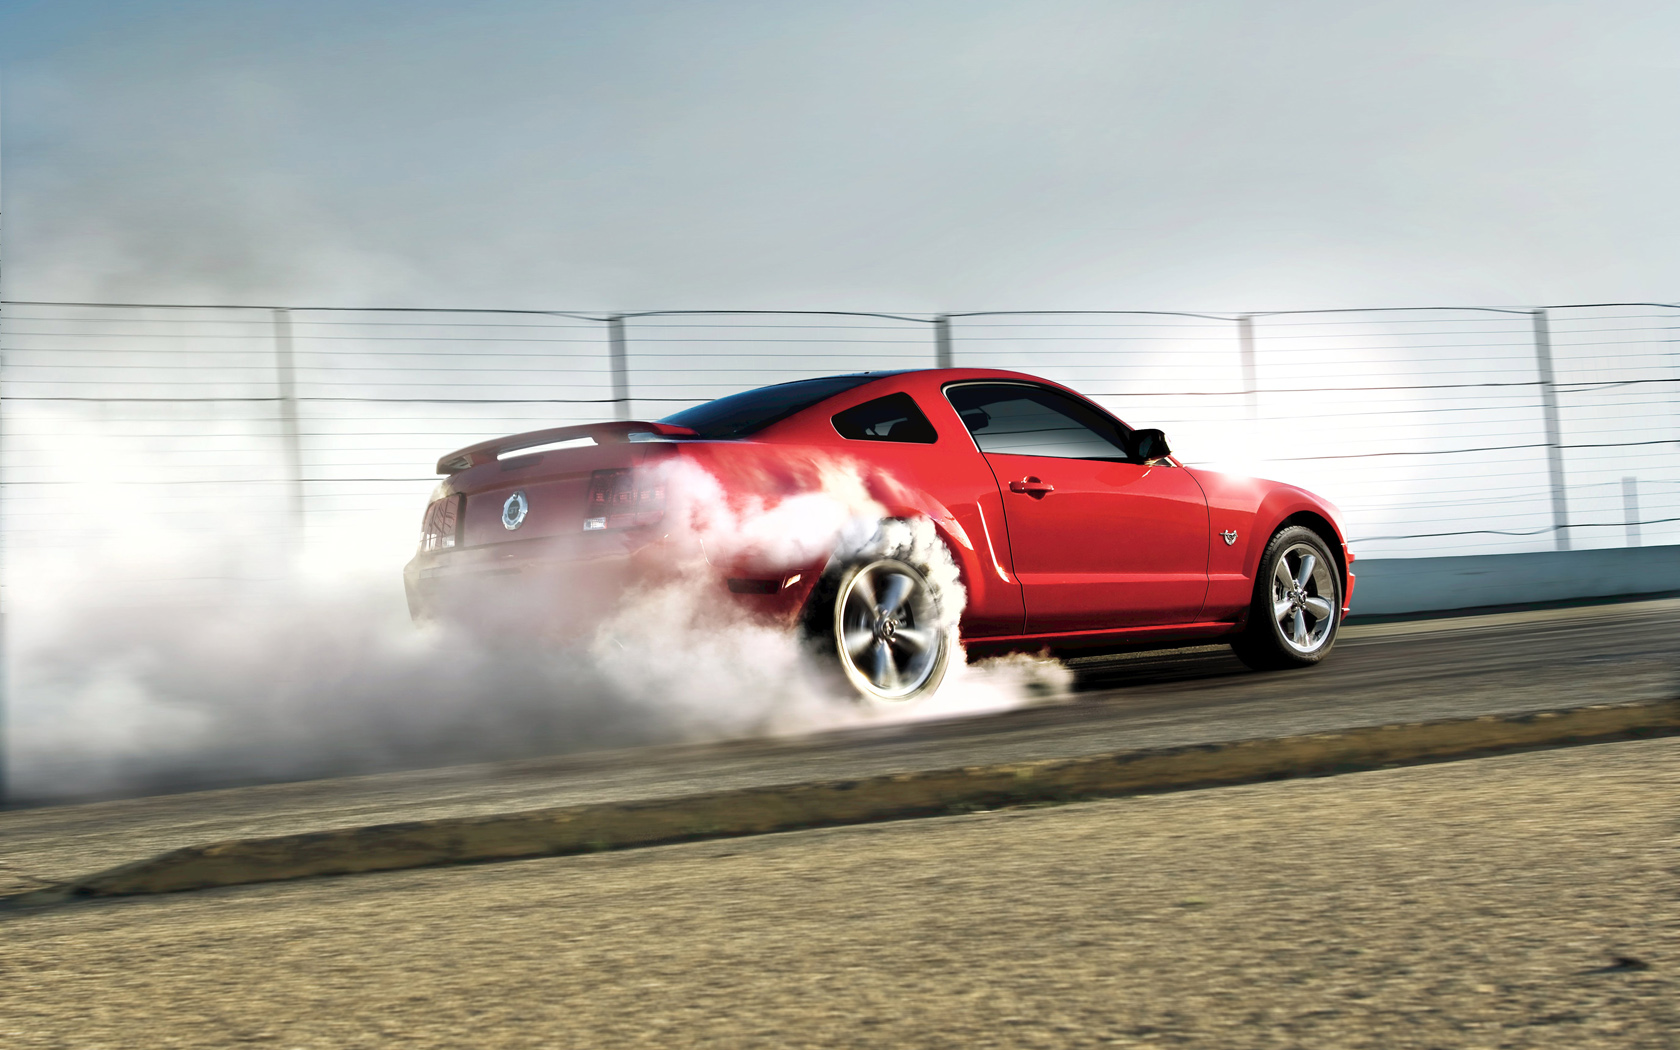 Ford Mustang Photo Gallery - 2009 mustang gt burnout (widescreen ...mustang burnout